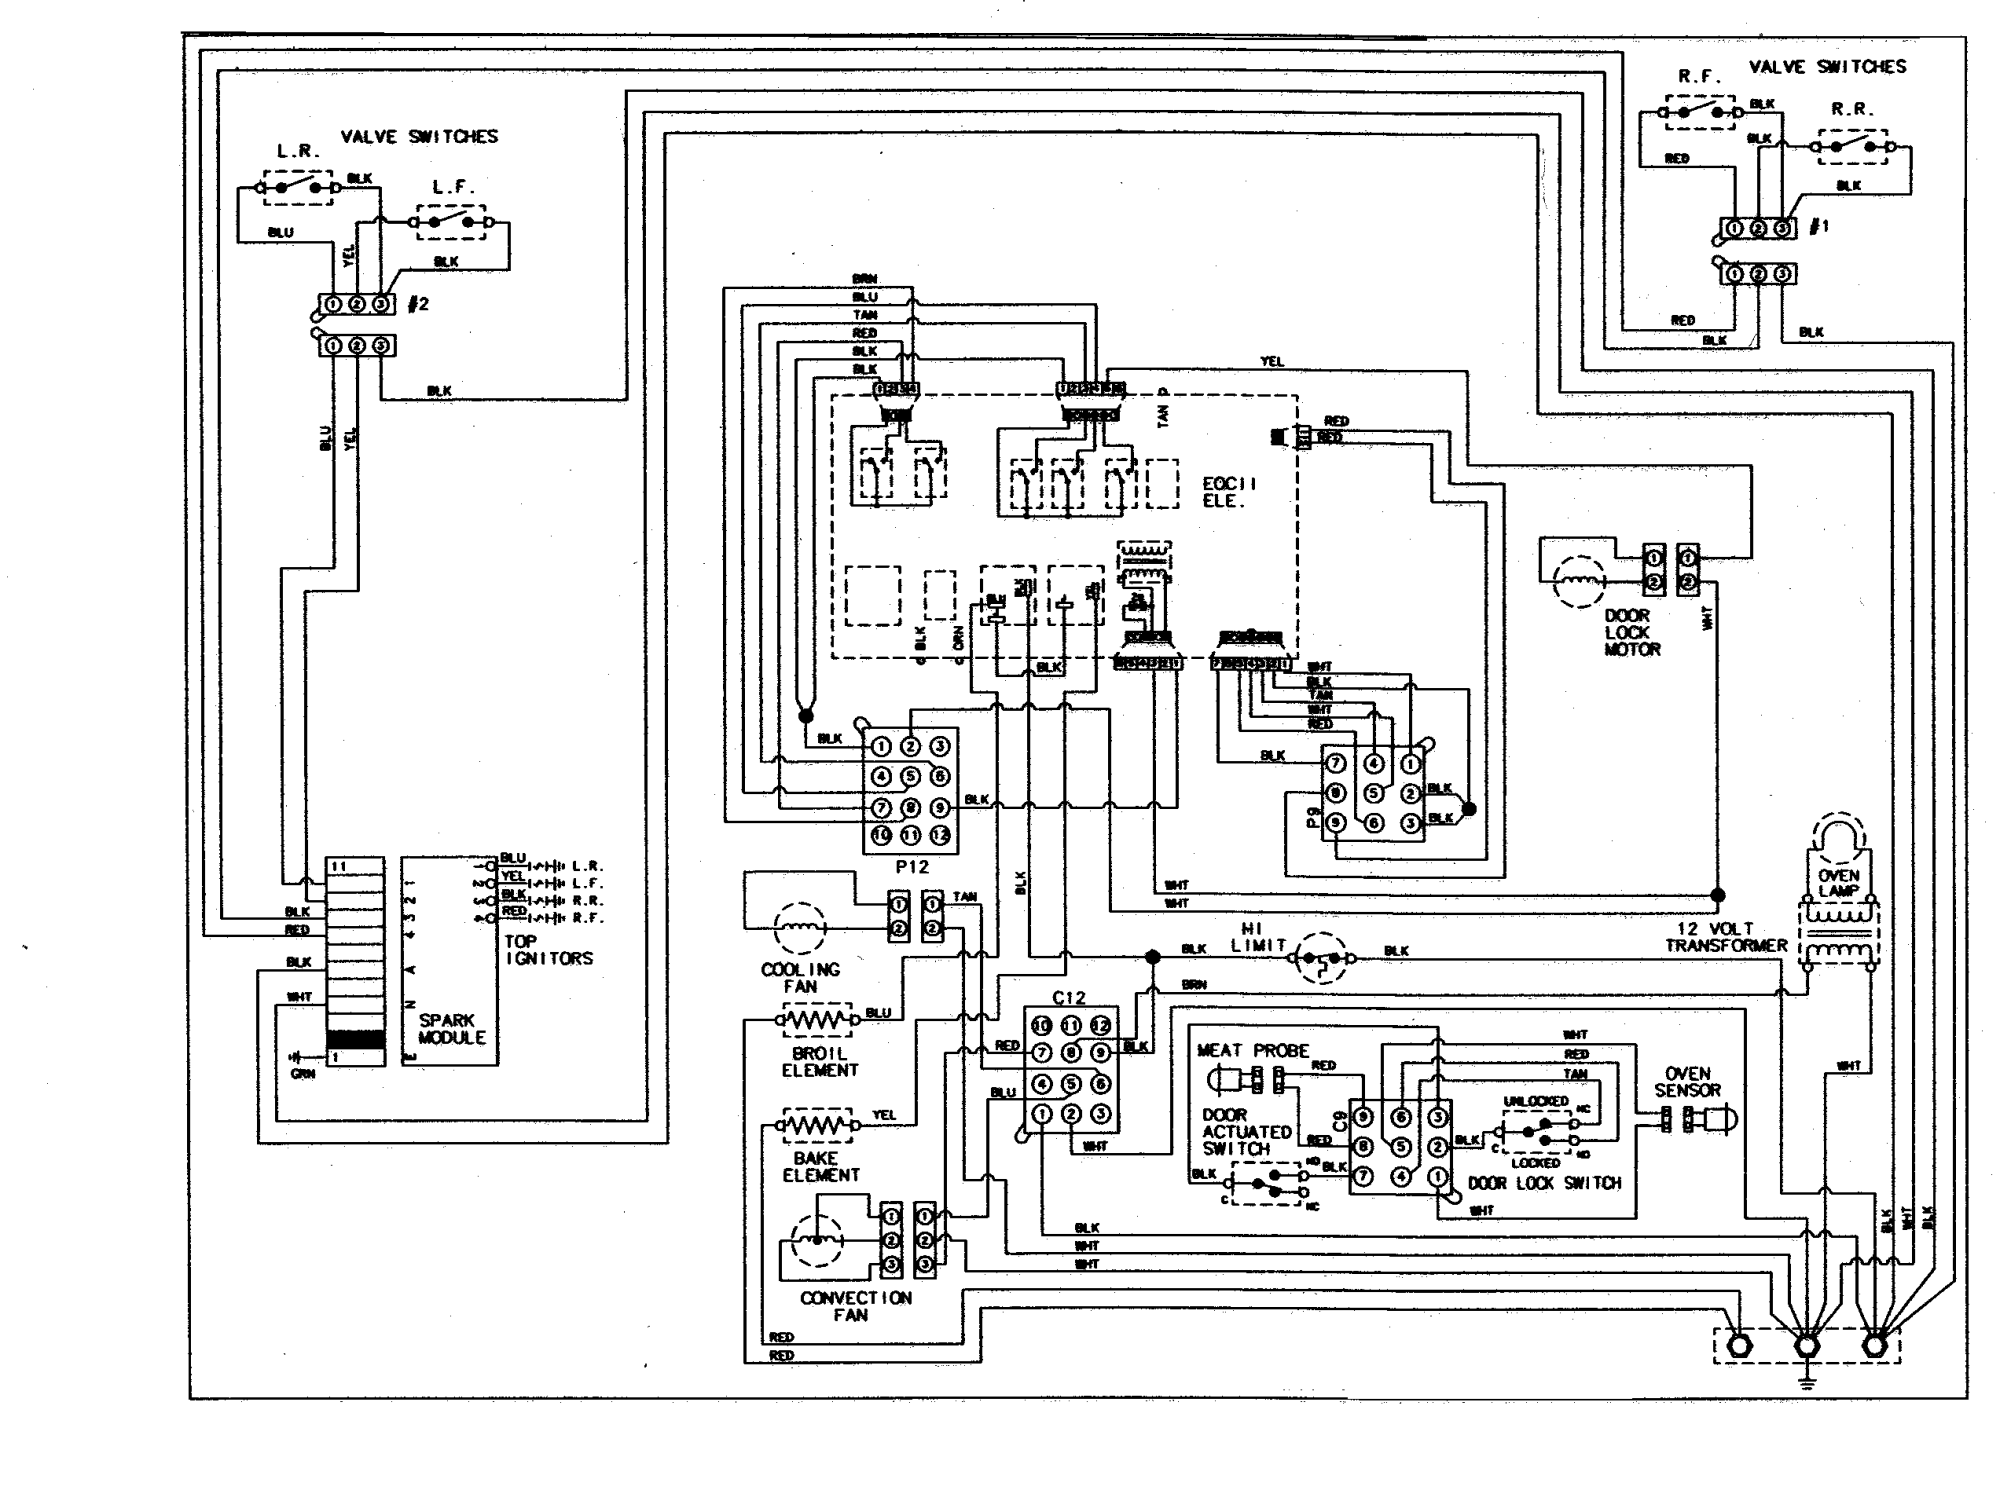 hight resolution of ge profile oven schematic completed wiring diagrams ge appliances schematic diagram ge refrigerator control board wiring